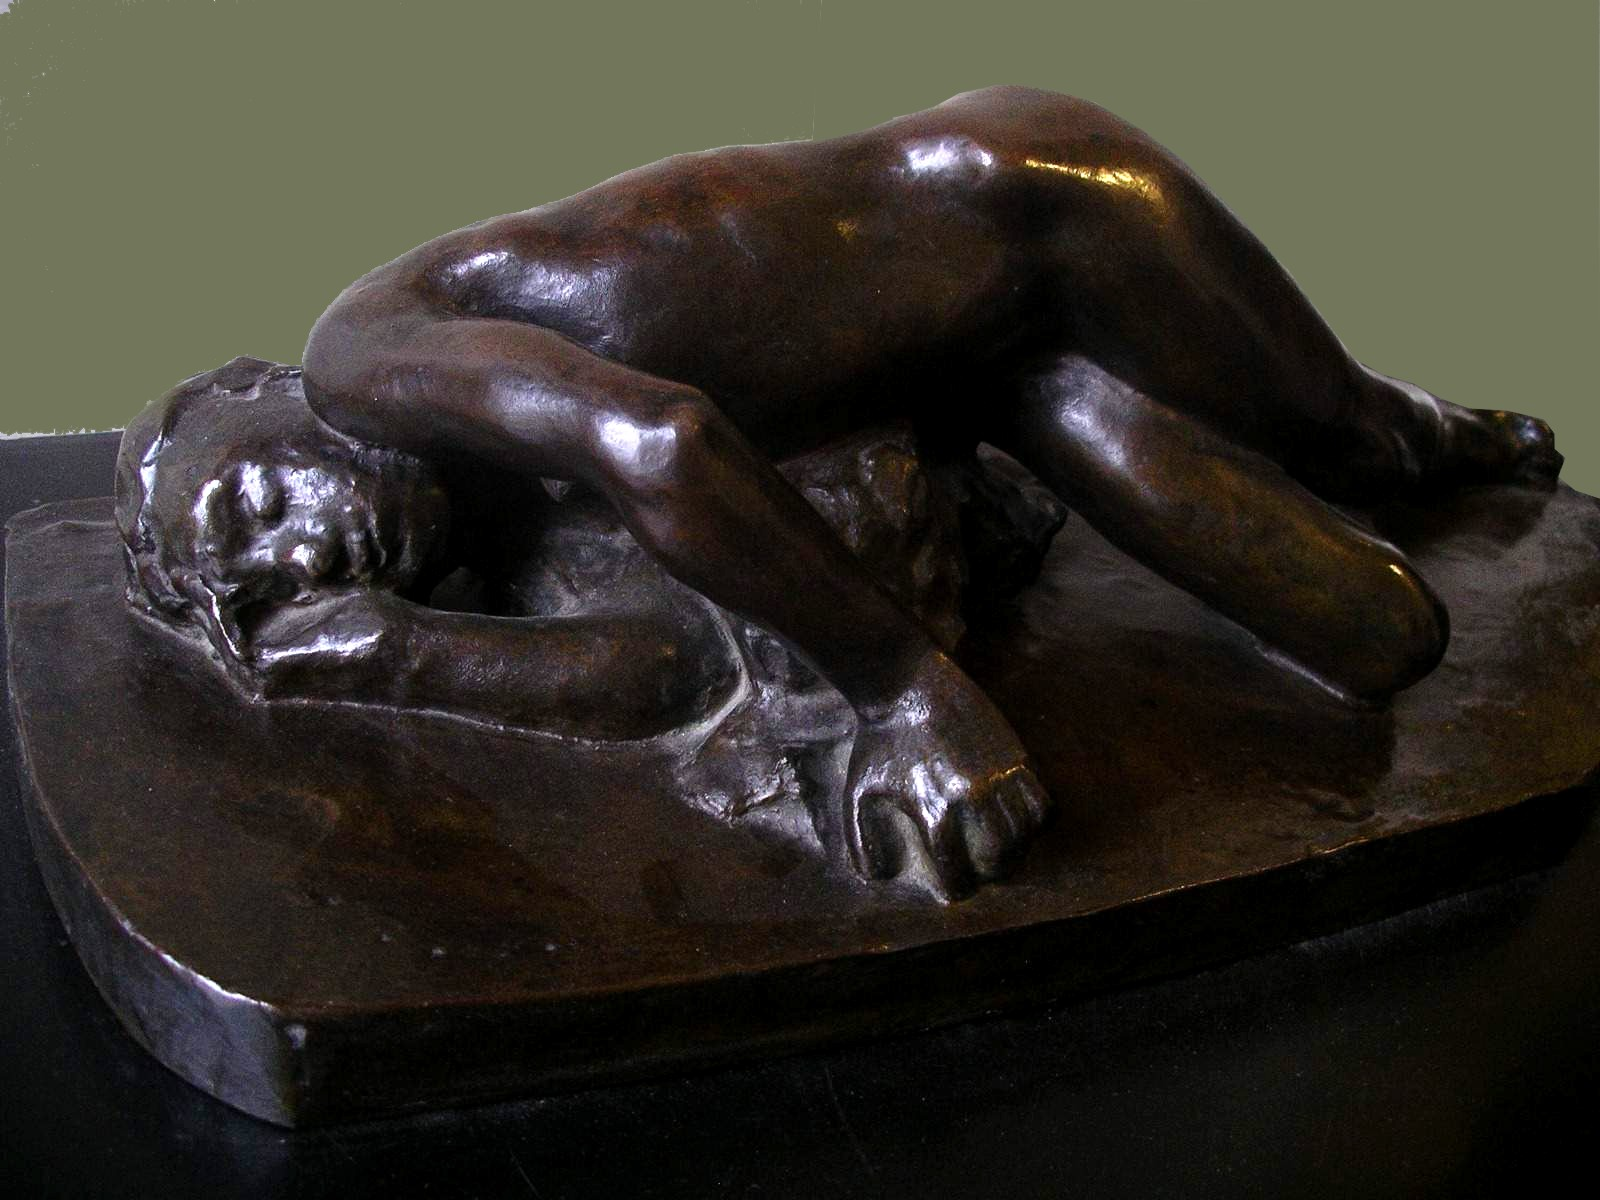 photo perso - Auguste Rodin: le sommeil